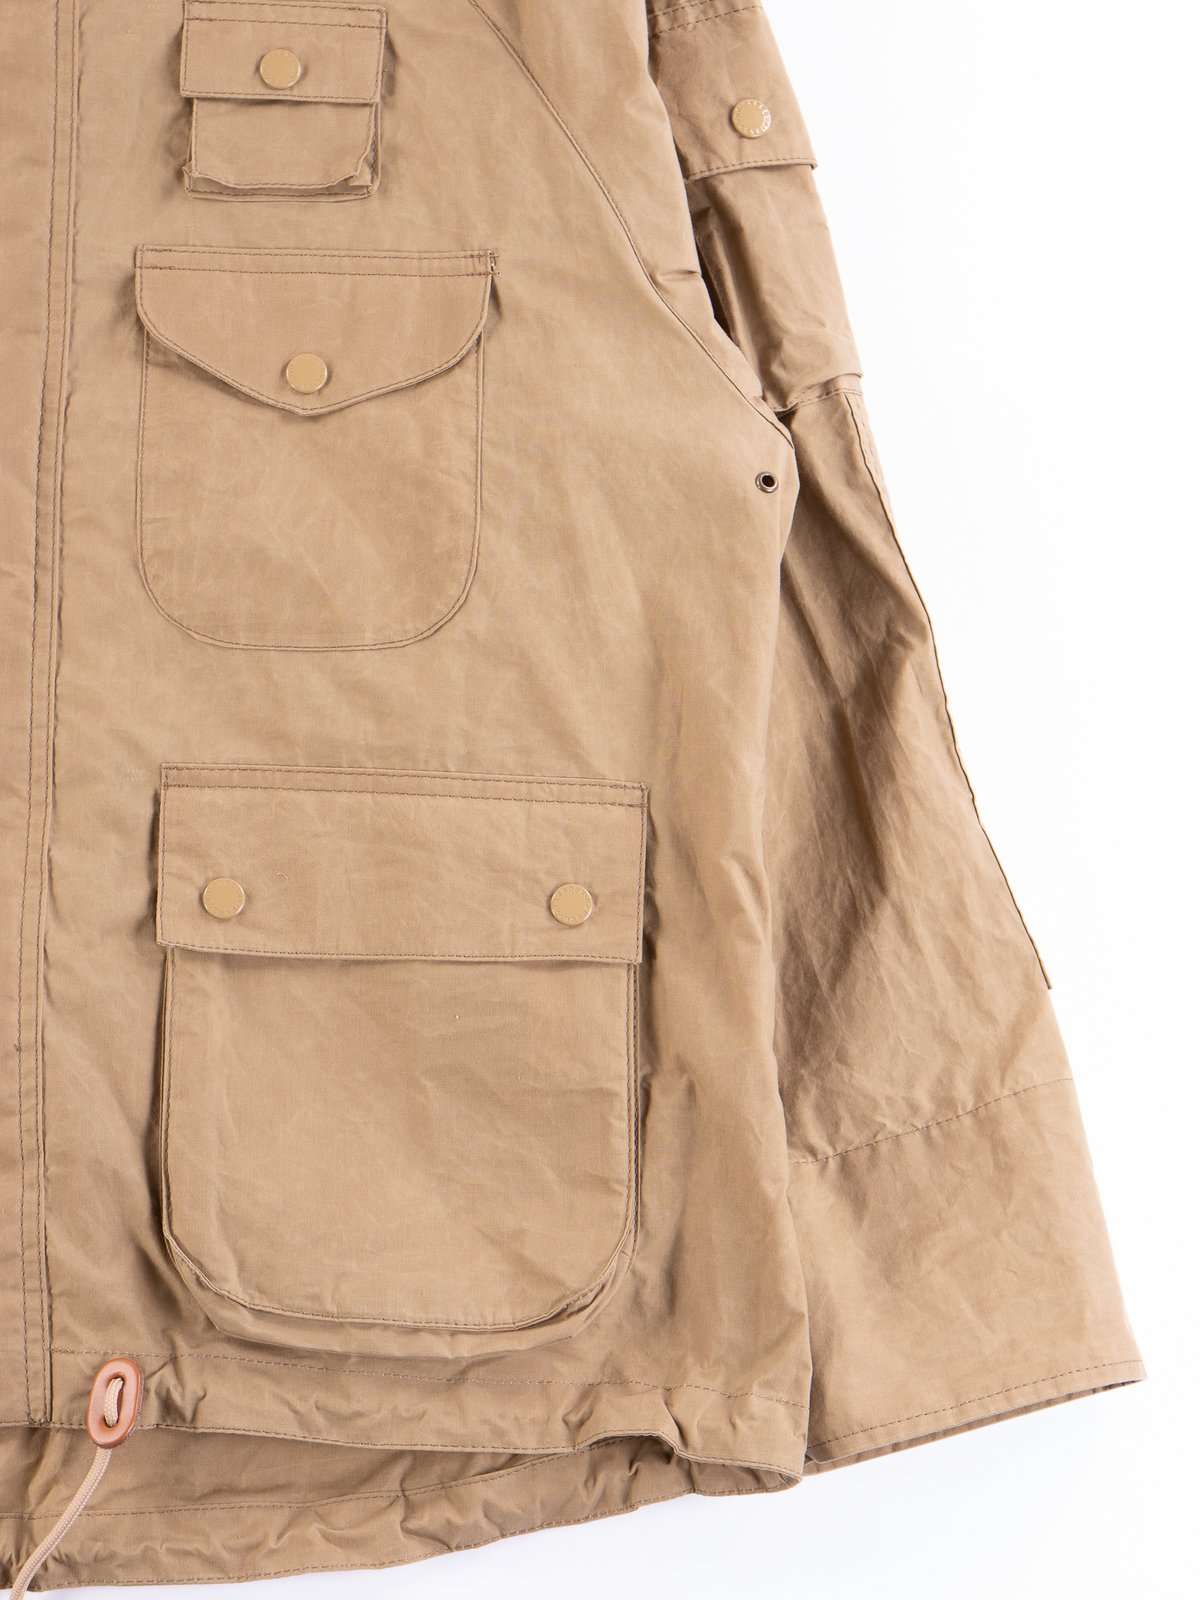 Sand Thompson Jacket - Image 4